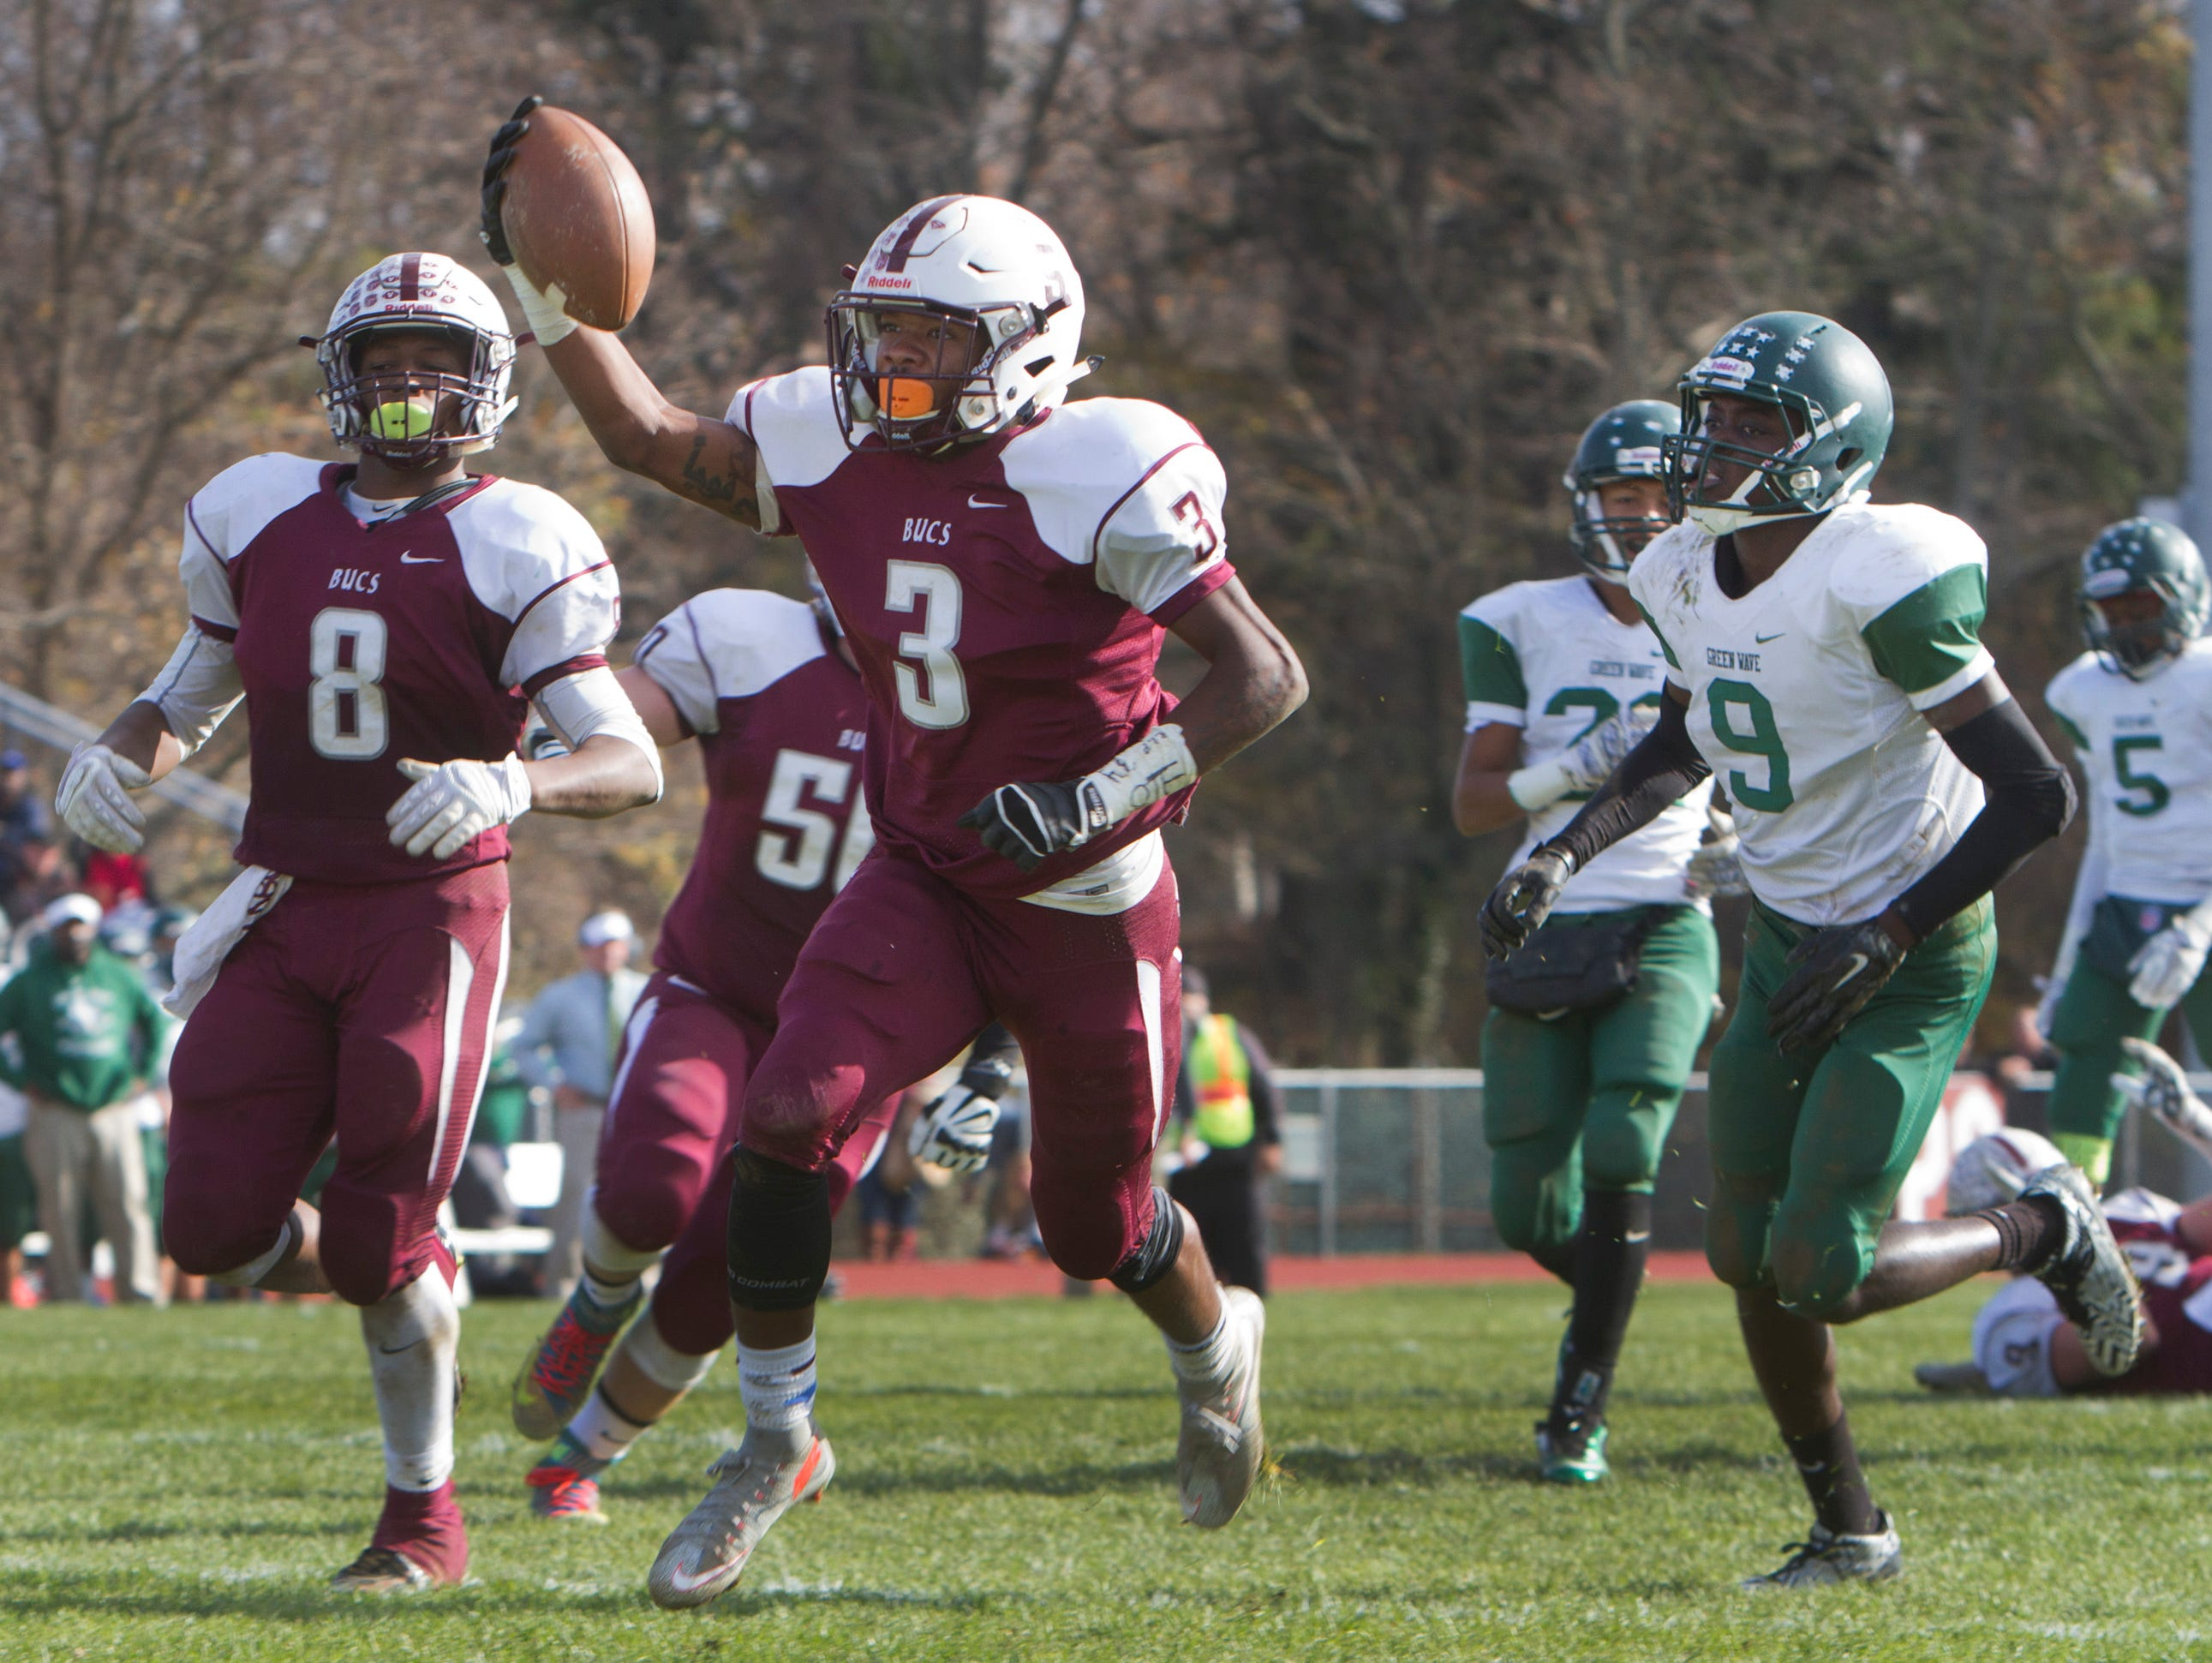 Red Bank Regional's Ben Sprauer raises the ball high as he heads for the enzone after getting through a hold up the middle for his team's second touchdown of game. Long Branch vs Red Bank Regional Thanksgiving Day Football game in Red Bank NJ on November 26, 2015.